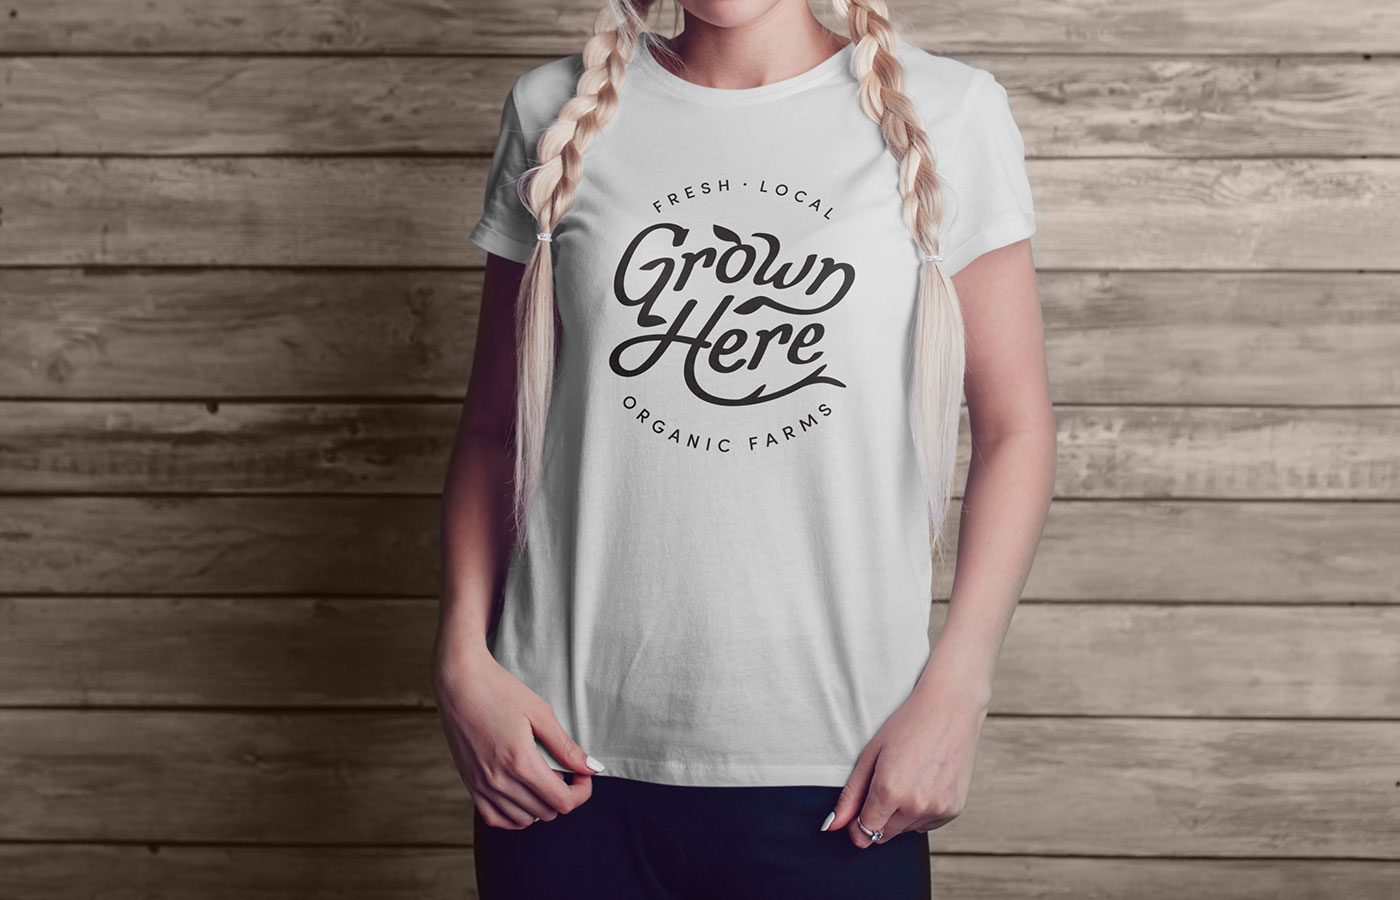 covetdesign_logo-design_branding_package-design_graphic-design_vancouver_work_wide_grownhere-tshirt4